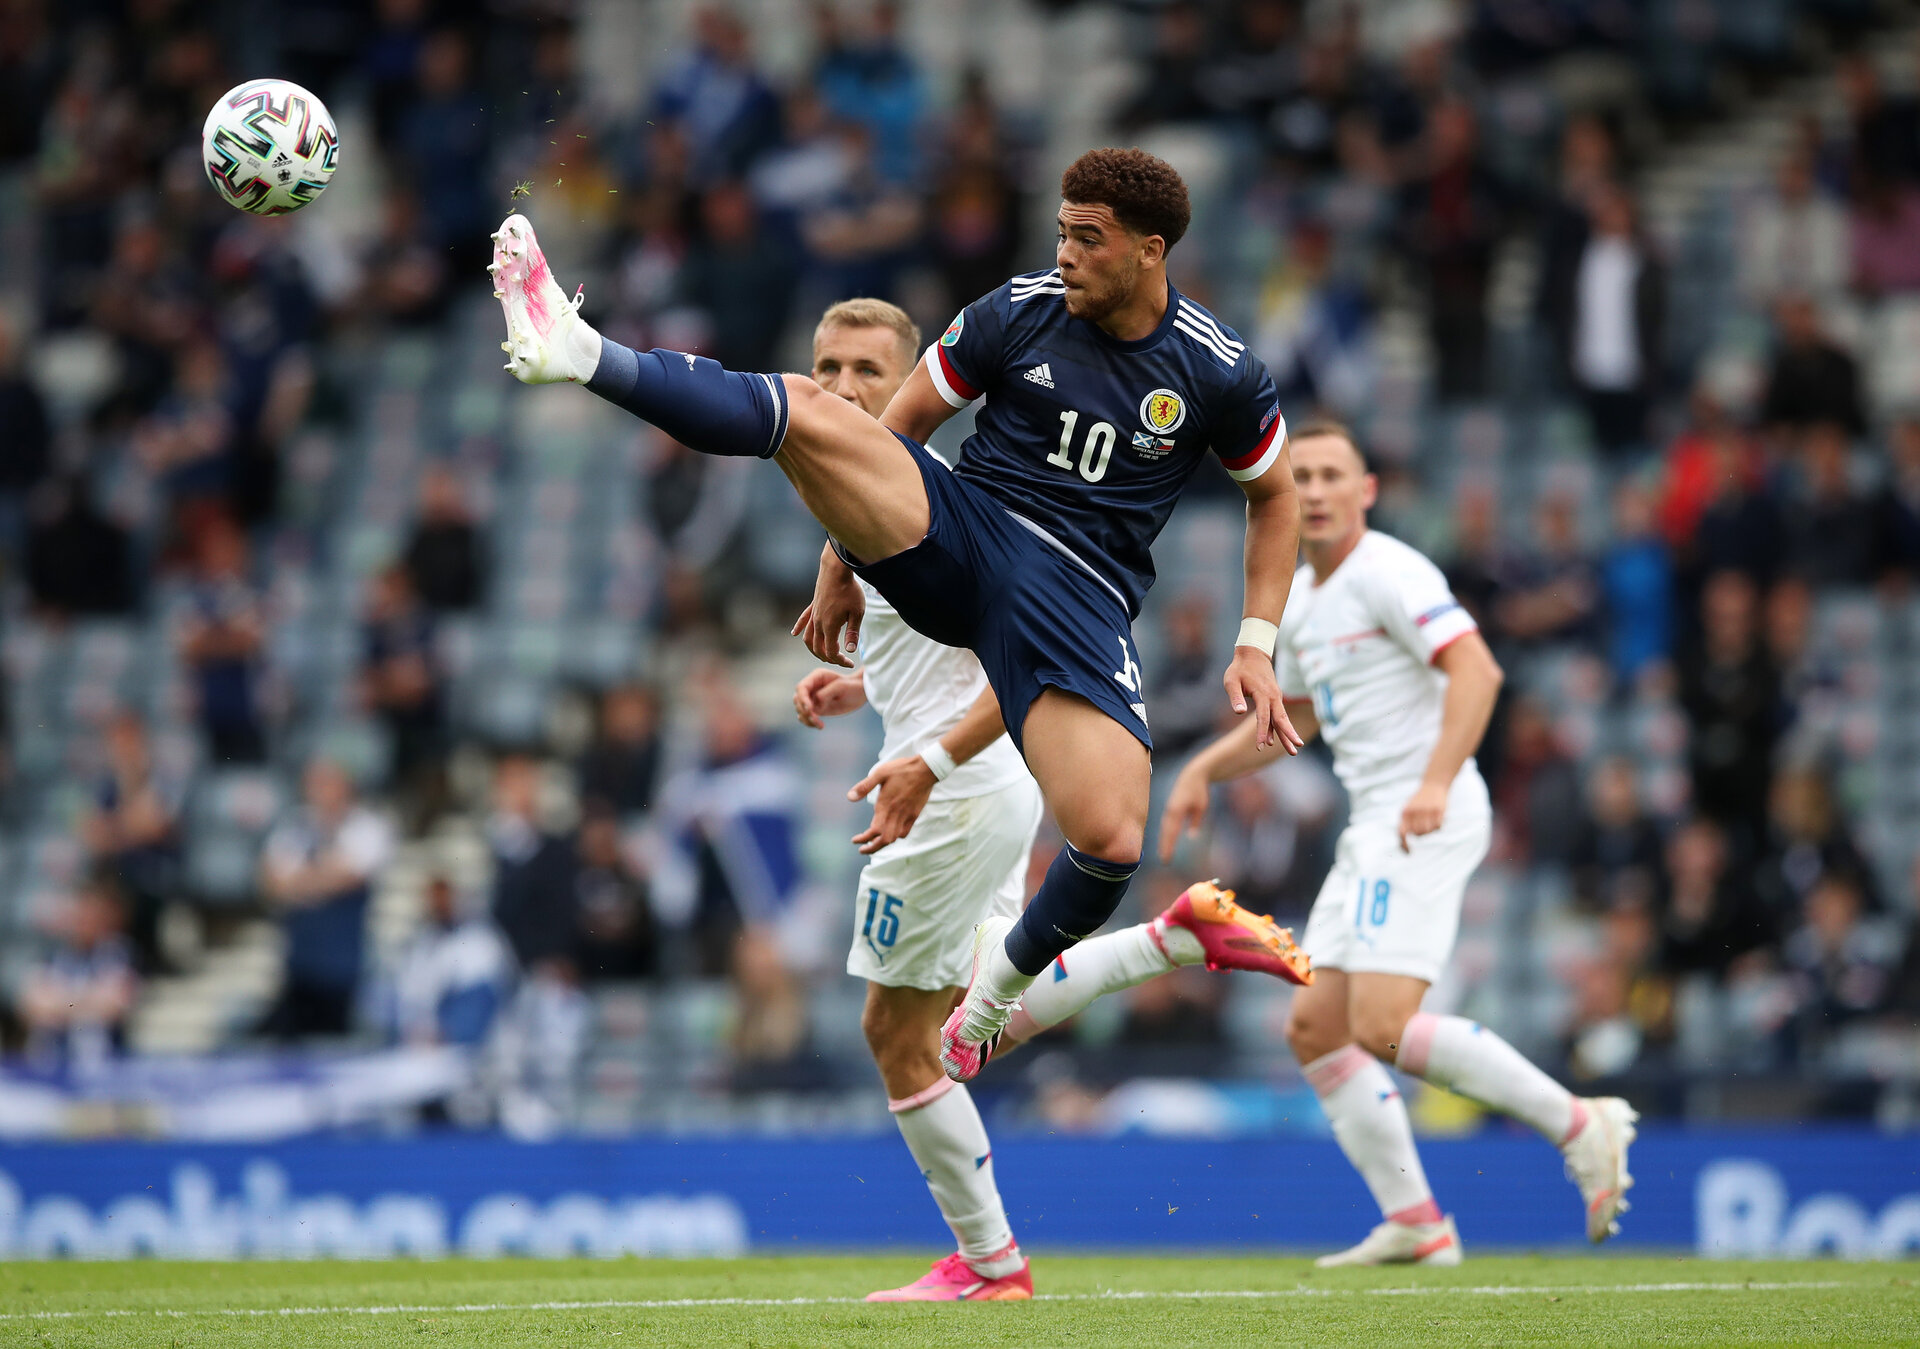 GLASGOW, SCOTLAND - JUNE 14: Che Adams of Scotland attempts to control the ball during the UEFA Euro 2020 Championship Group D match between Scotland v Czech Republic at Hampden Park on June 14, 2021 in Glasgow, Scotland. (Photo by Jan Kruger - UEFA/UEFA via Getty Images)